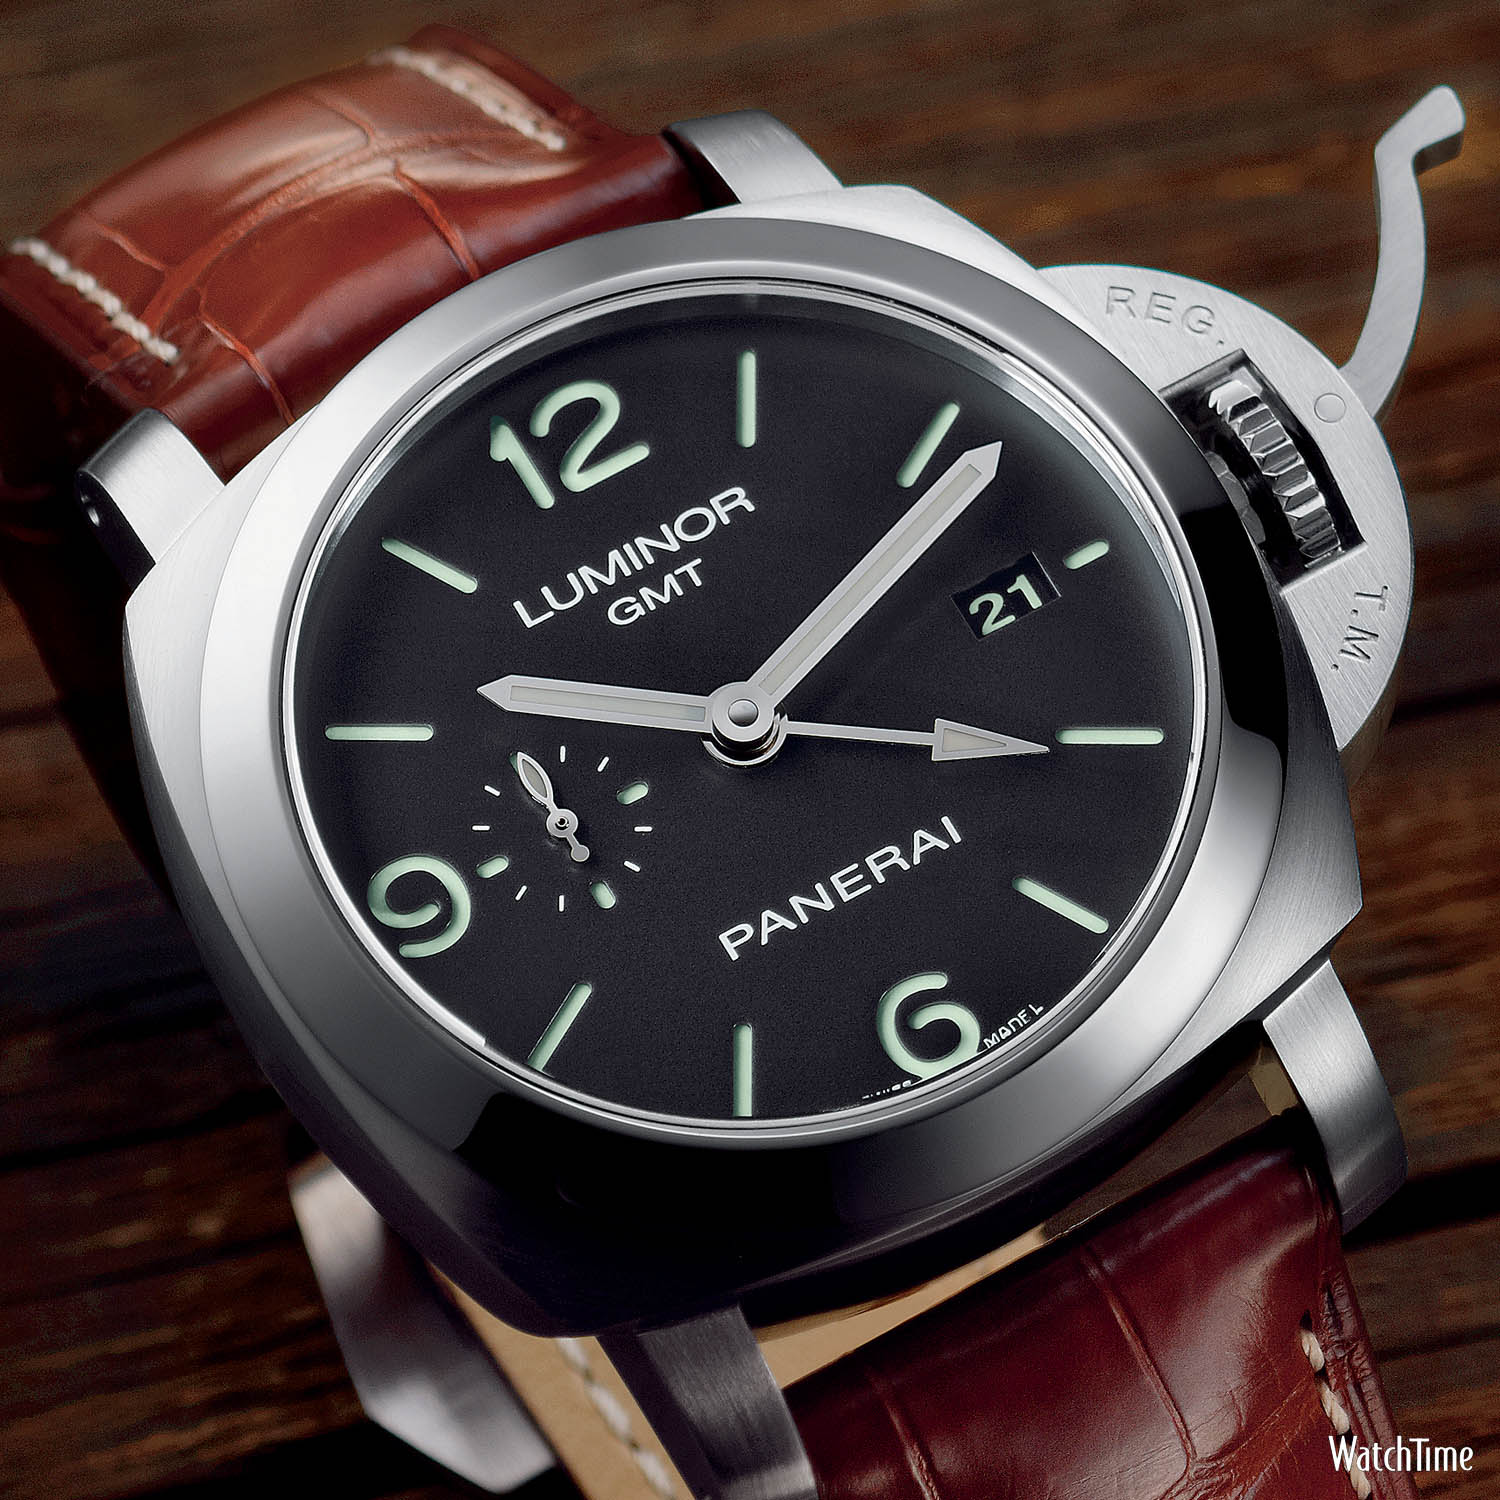 Panerai Luminor 1950 3 Days Gmt Review